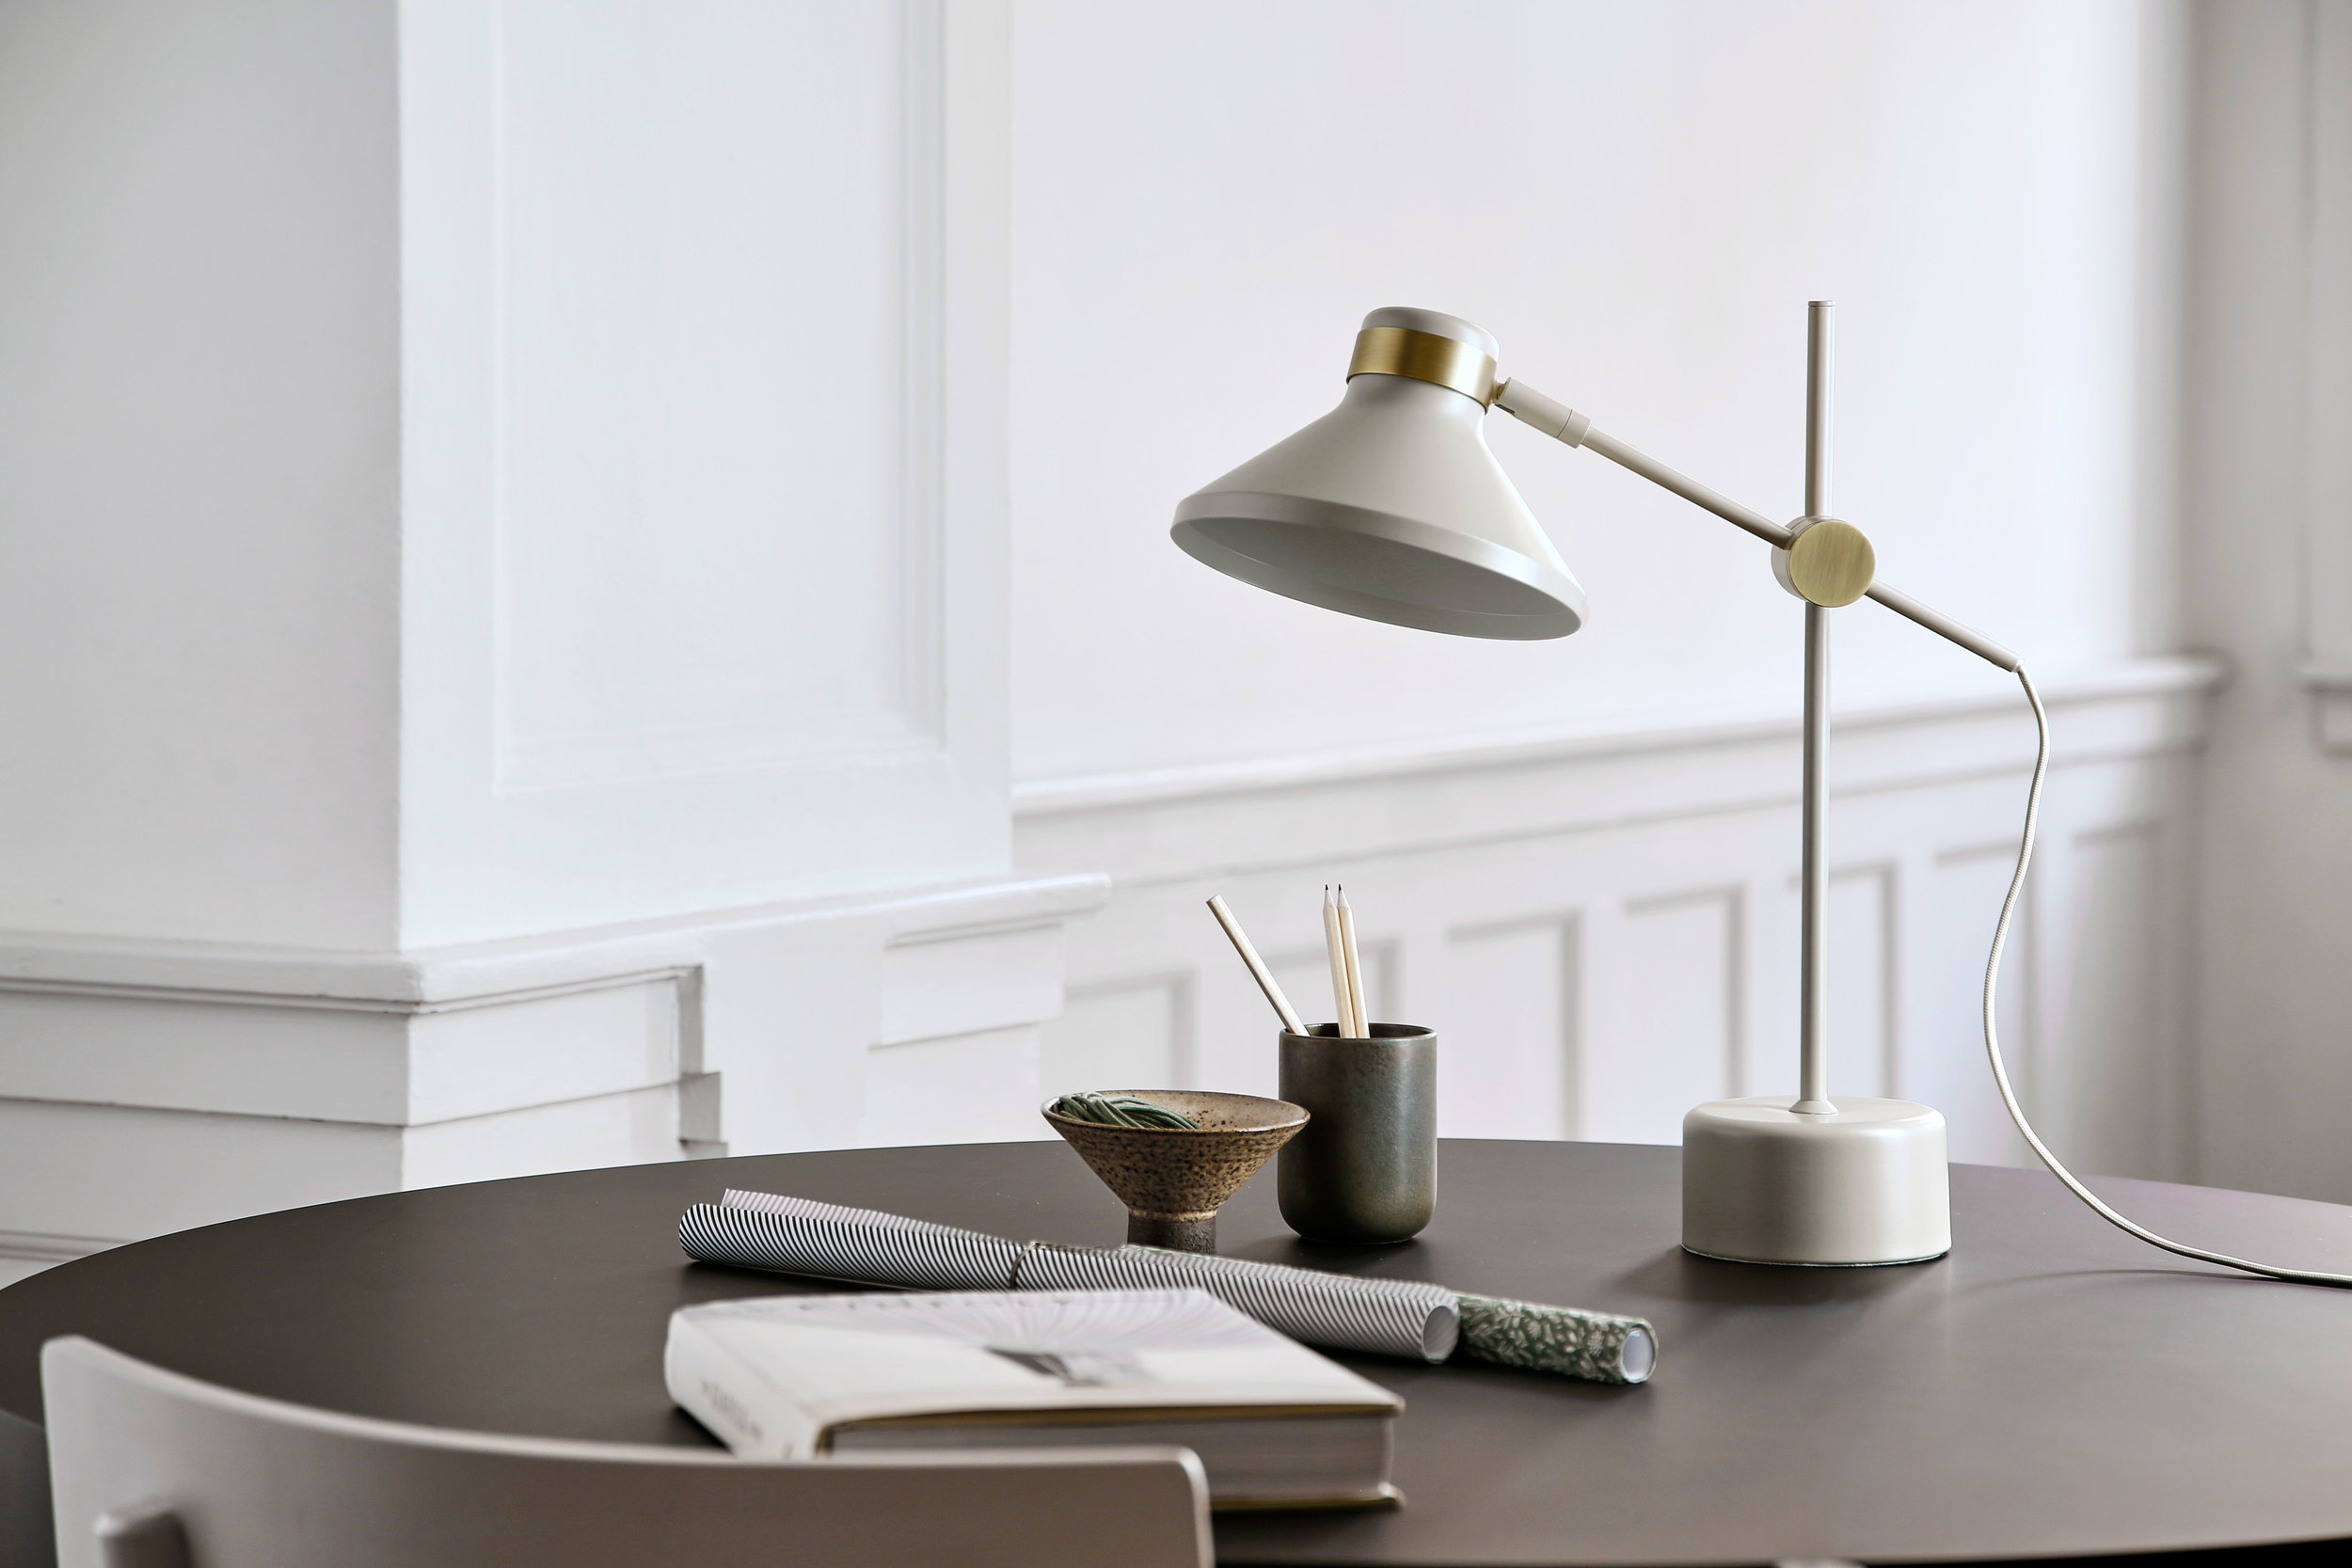 """""""MR, a proud gentleman with a twinkle in his eye. The MR series is a new interpretation of a well-known and classic design. Distinctive details and materials help give the lamp its own unique personality.""""   READ"""